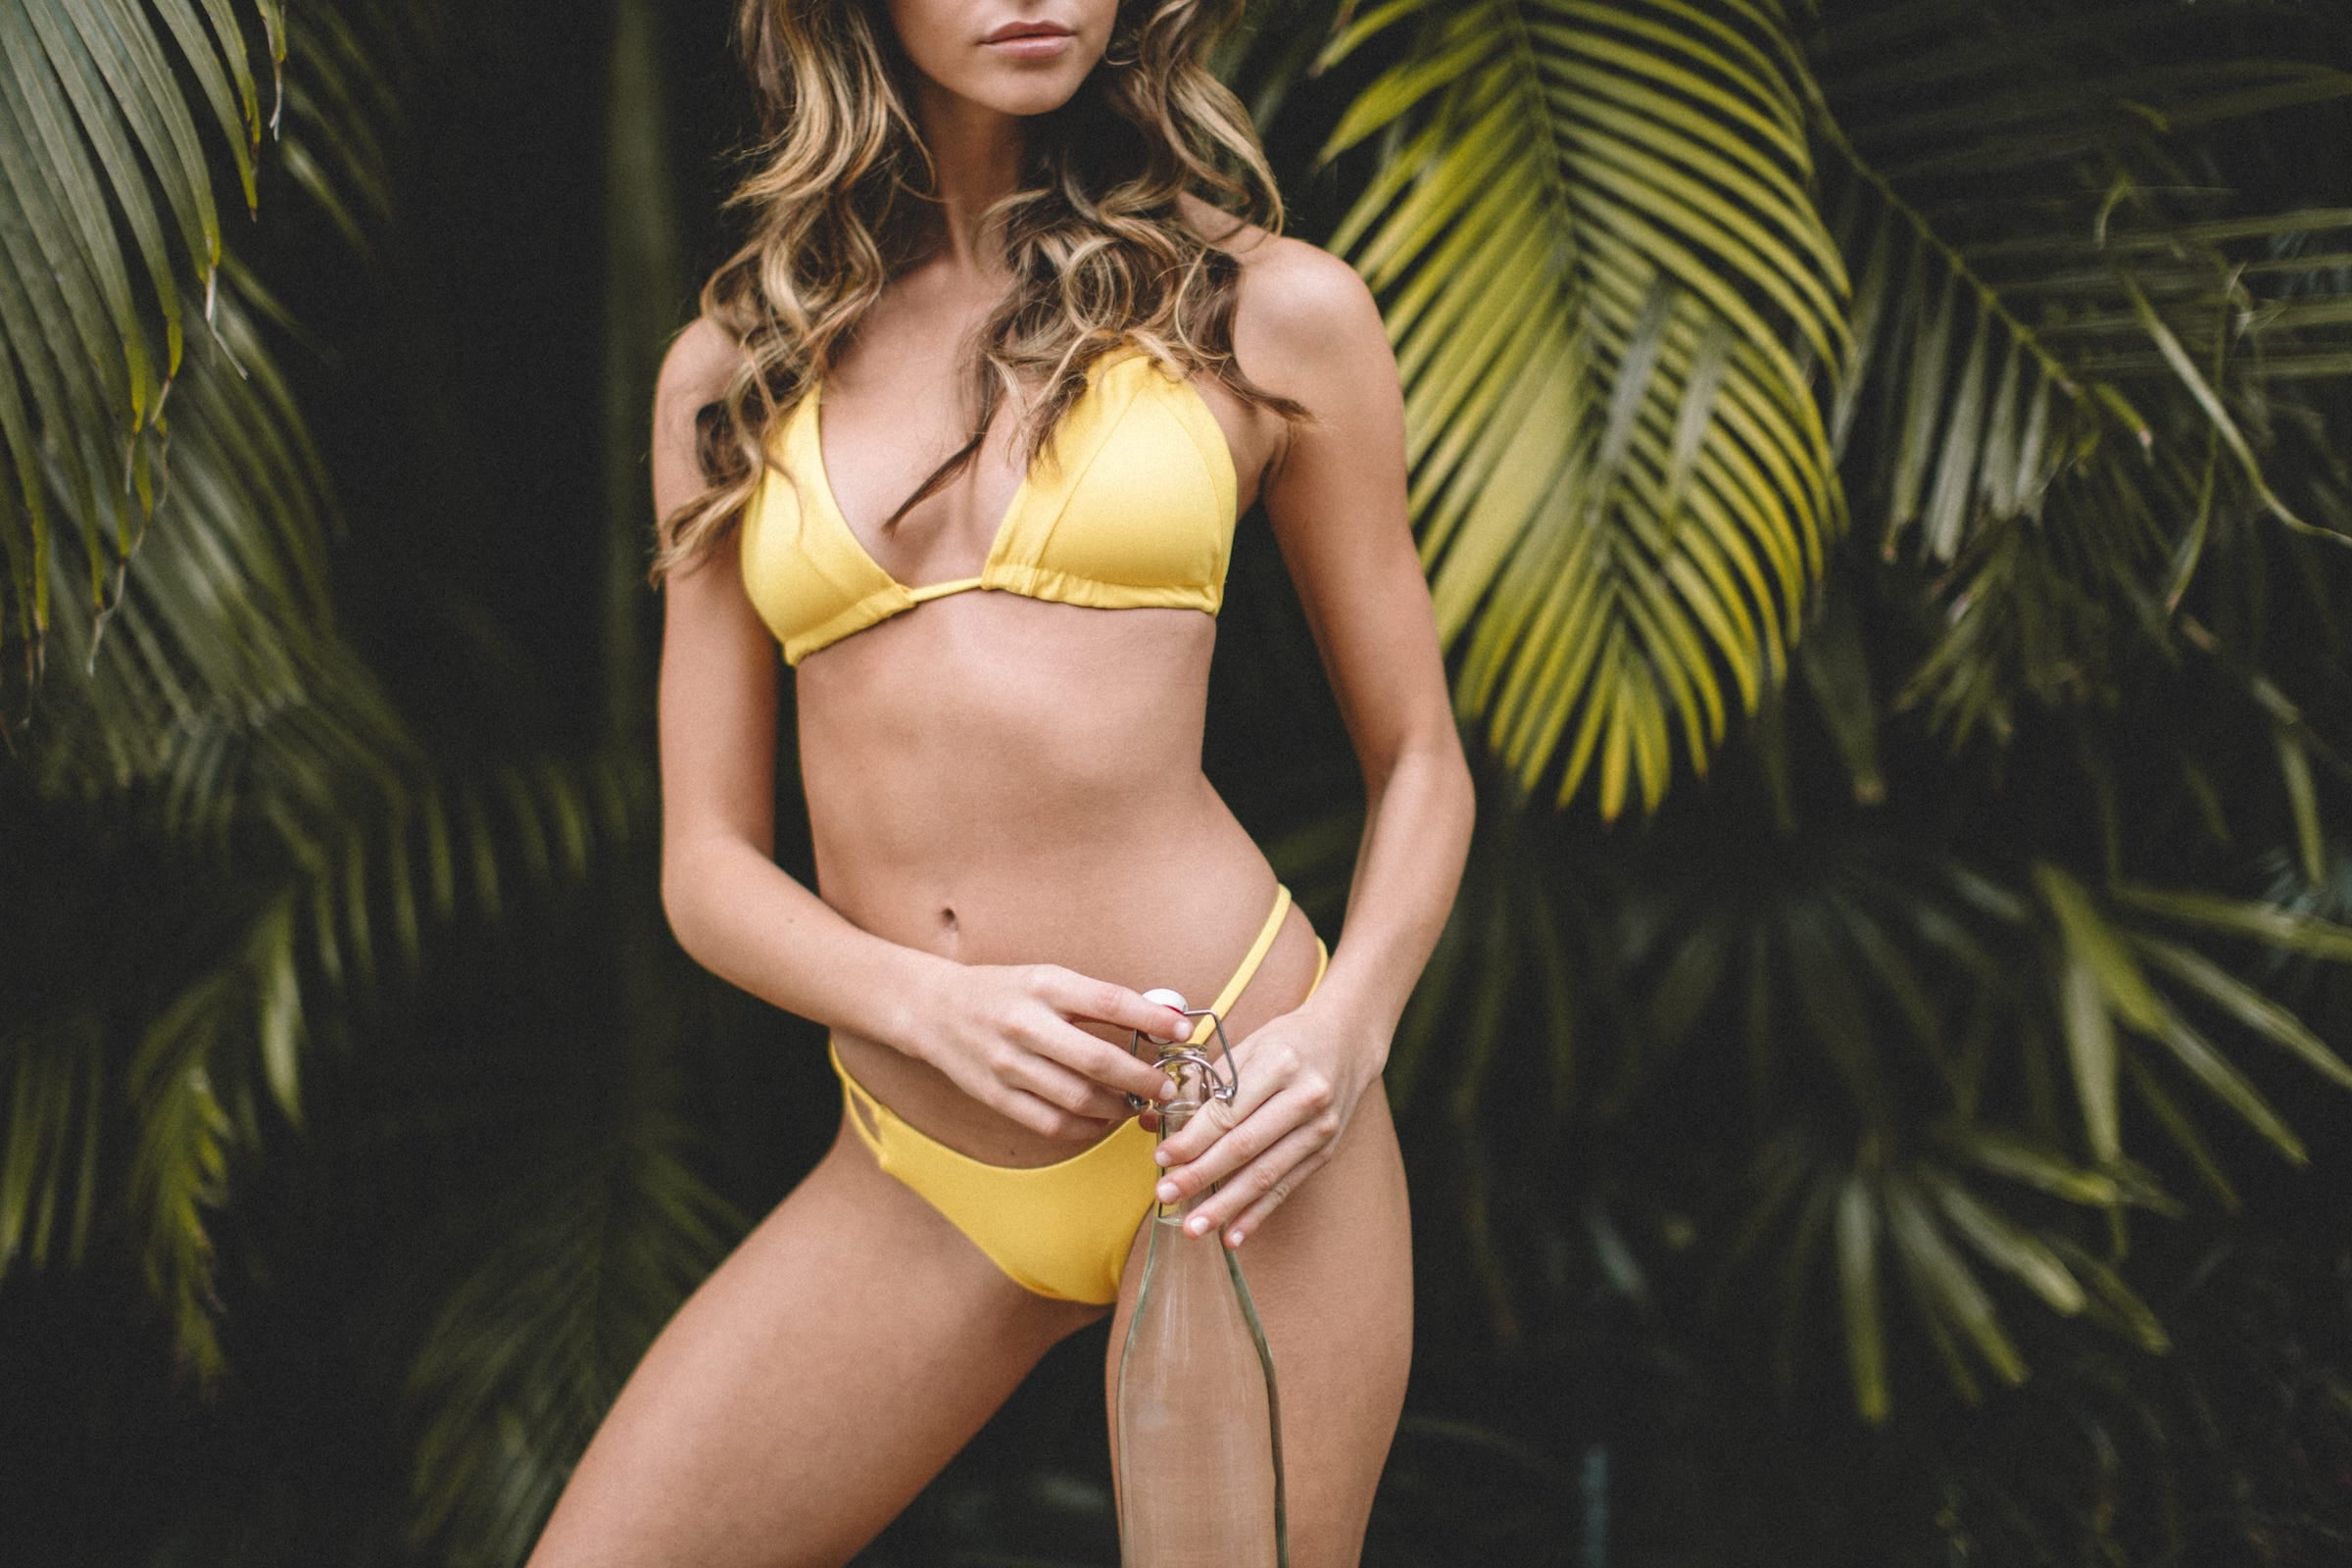 Crisp Bikini Top and Tingle Bikini Bottom in Banana